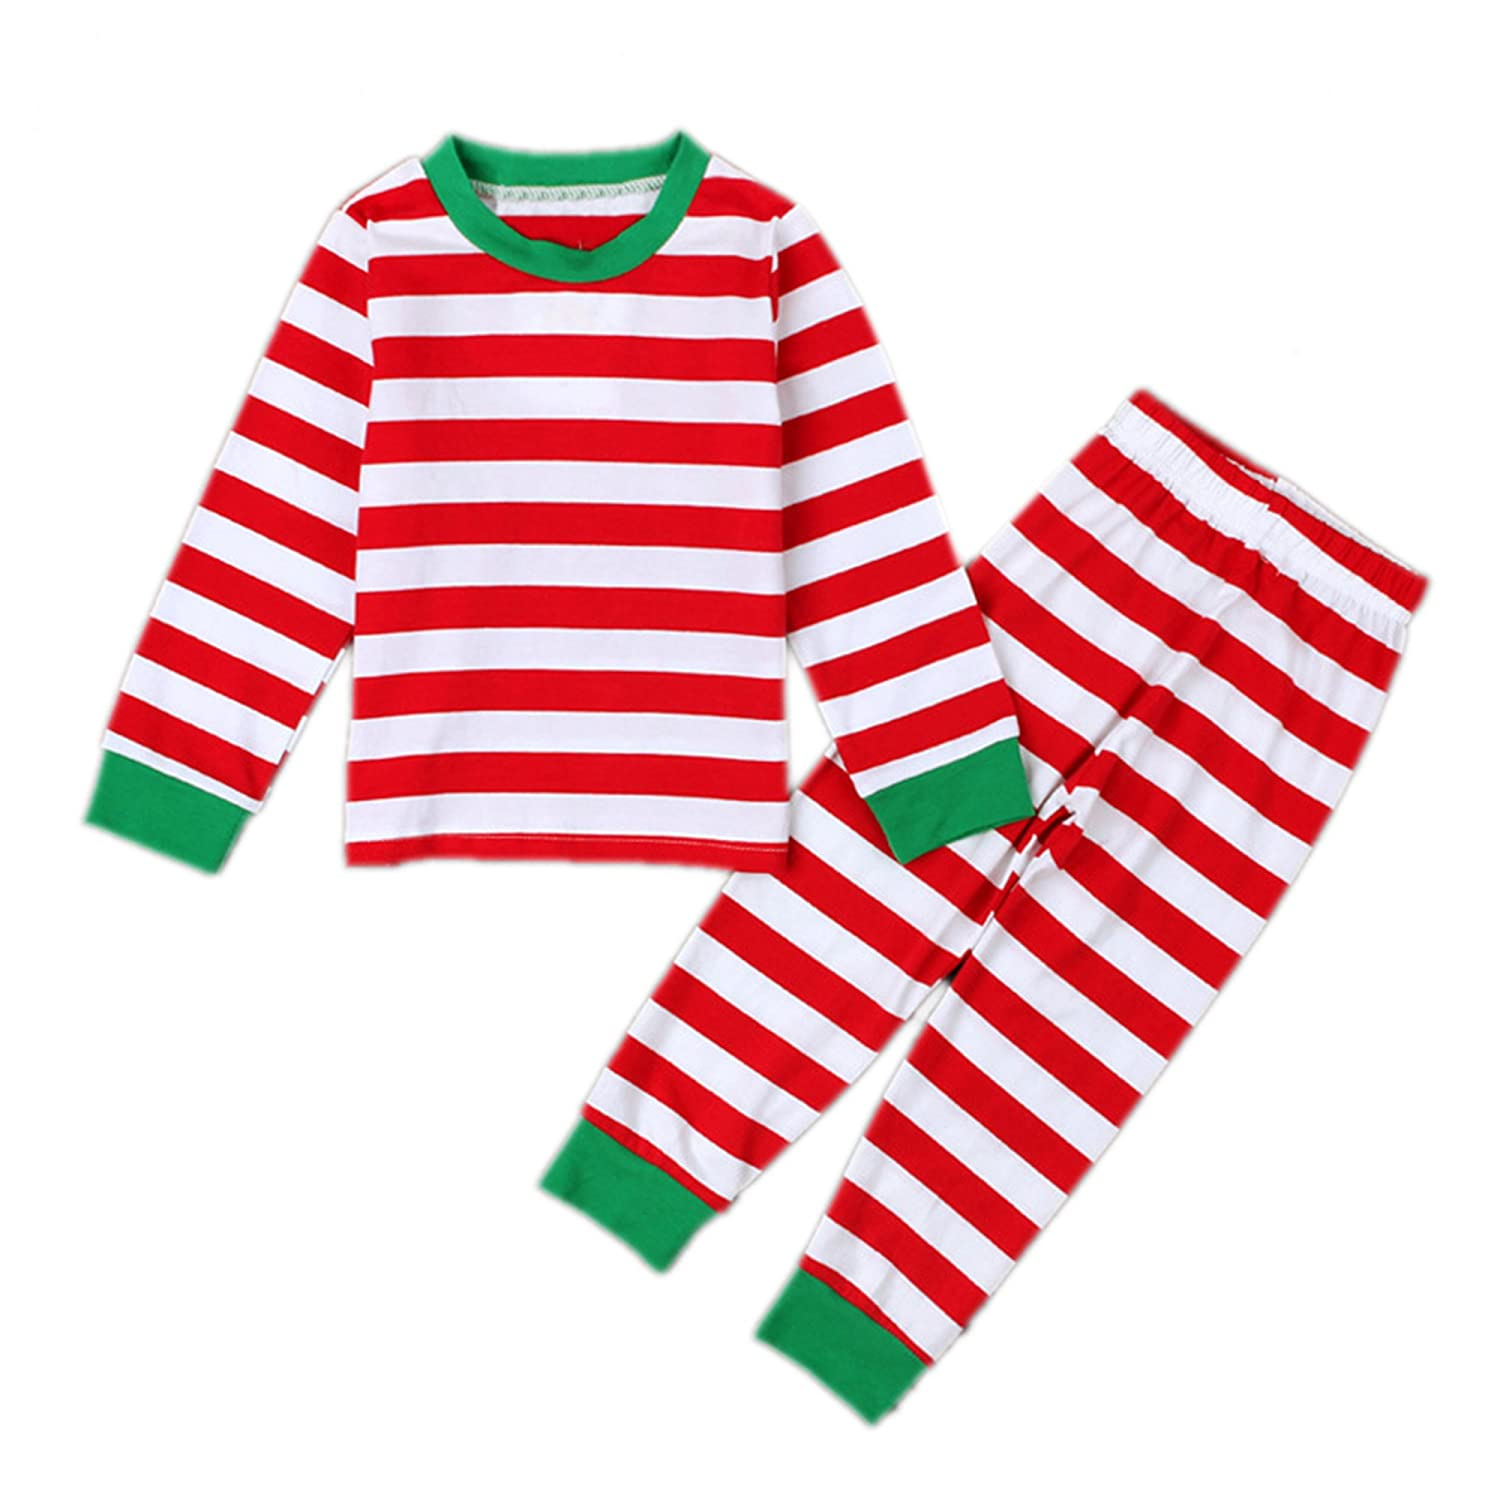 Pettigirl Kids Christmas Pajamas Stripes Outfits Shirt + Pants Homewear Pajamas Sets U-NBCS1010-1126-CA